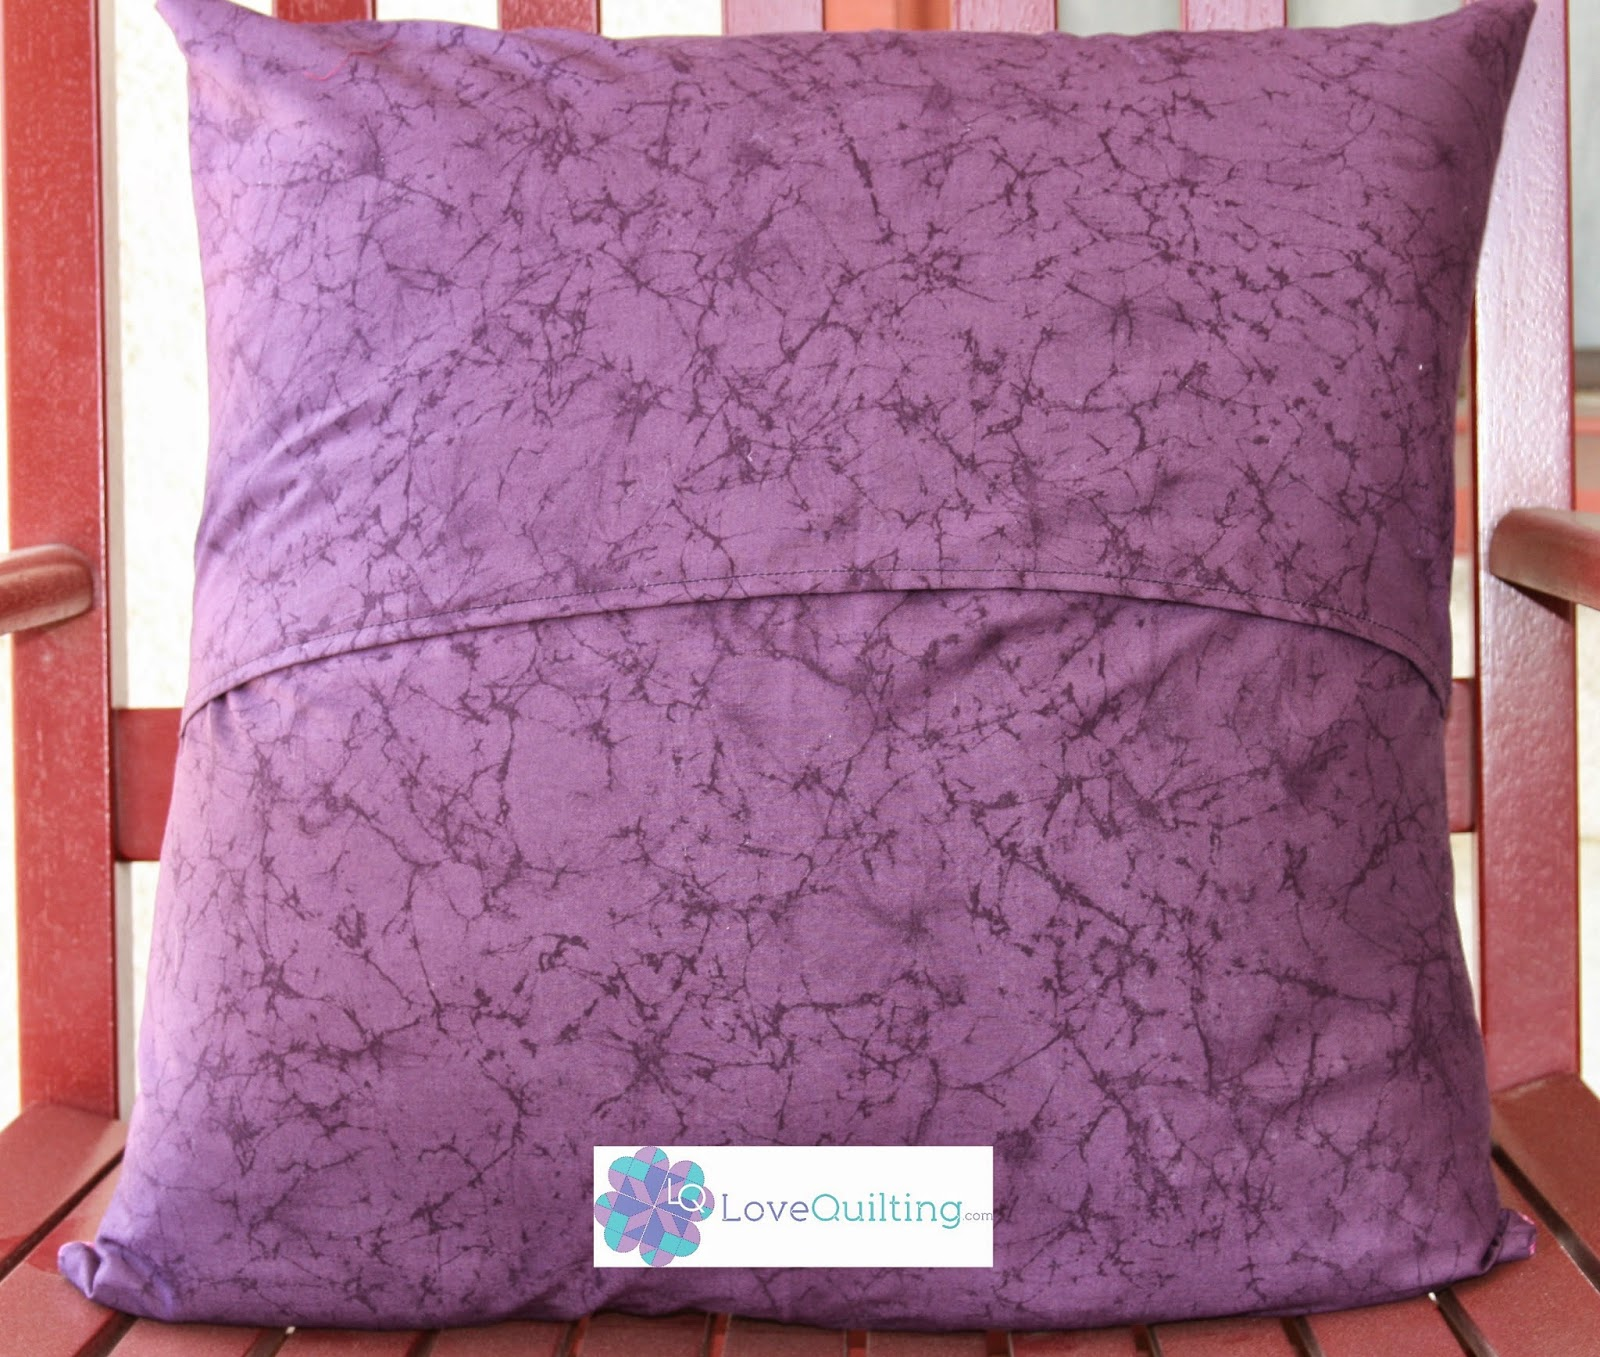 http://www.lovequilting.com/shop/free-lovequilting-com-exclusive/envelope-pillow/